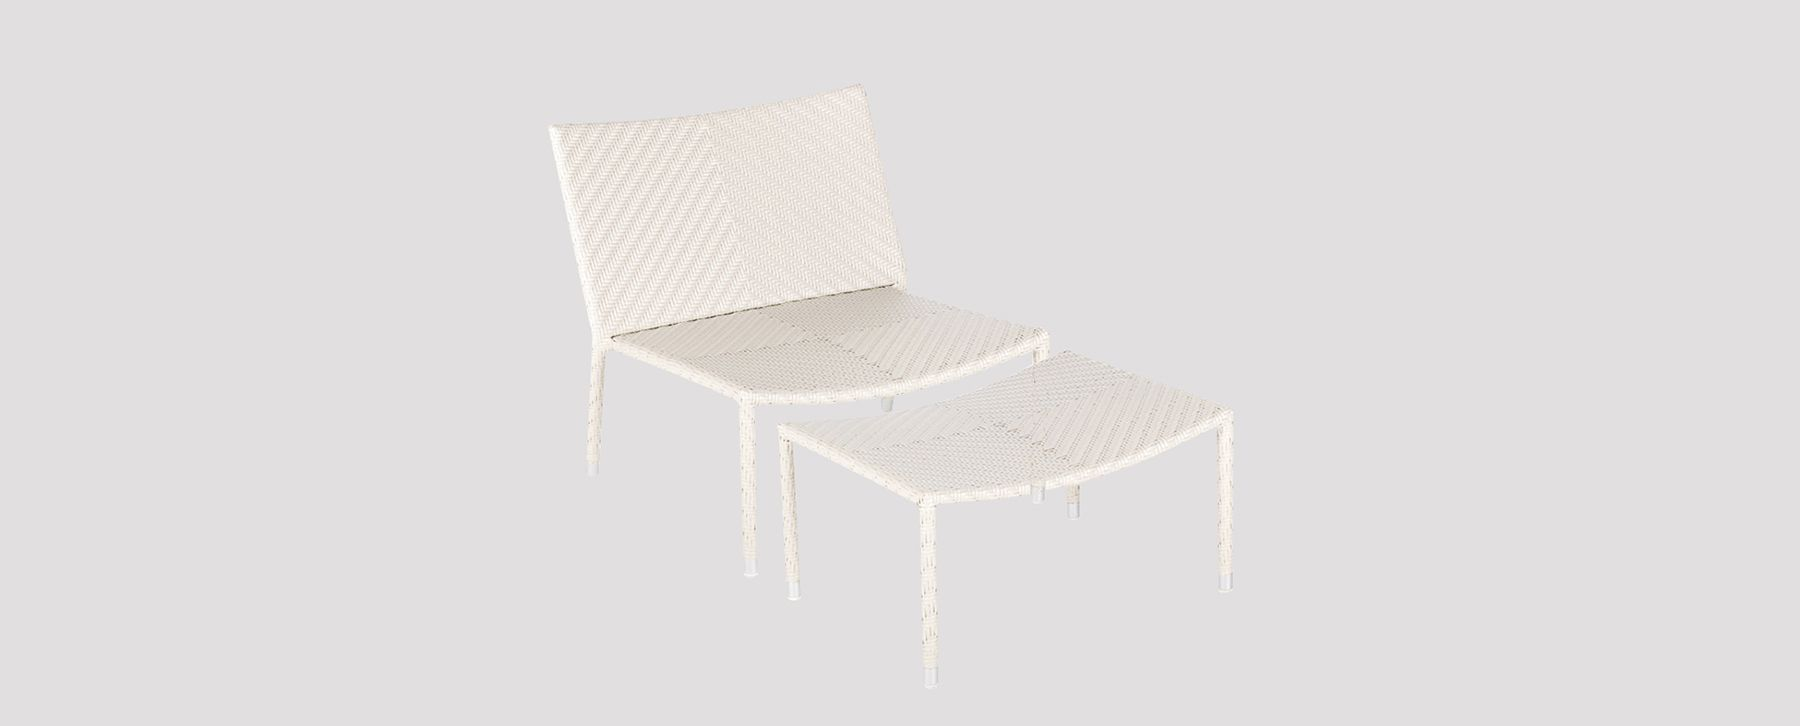 mirian club chair stackable wicker pool spa outdoor furniture 2